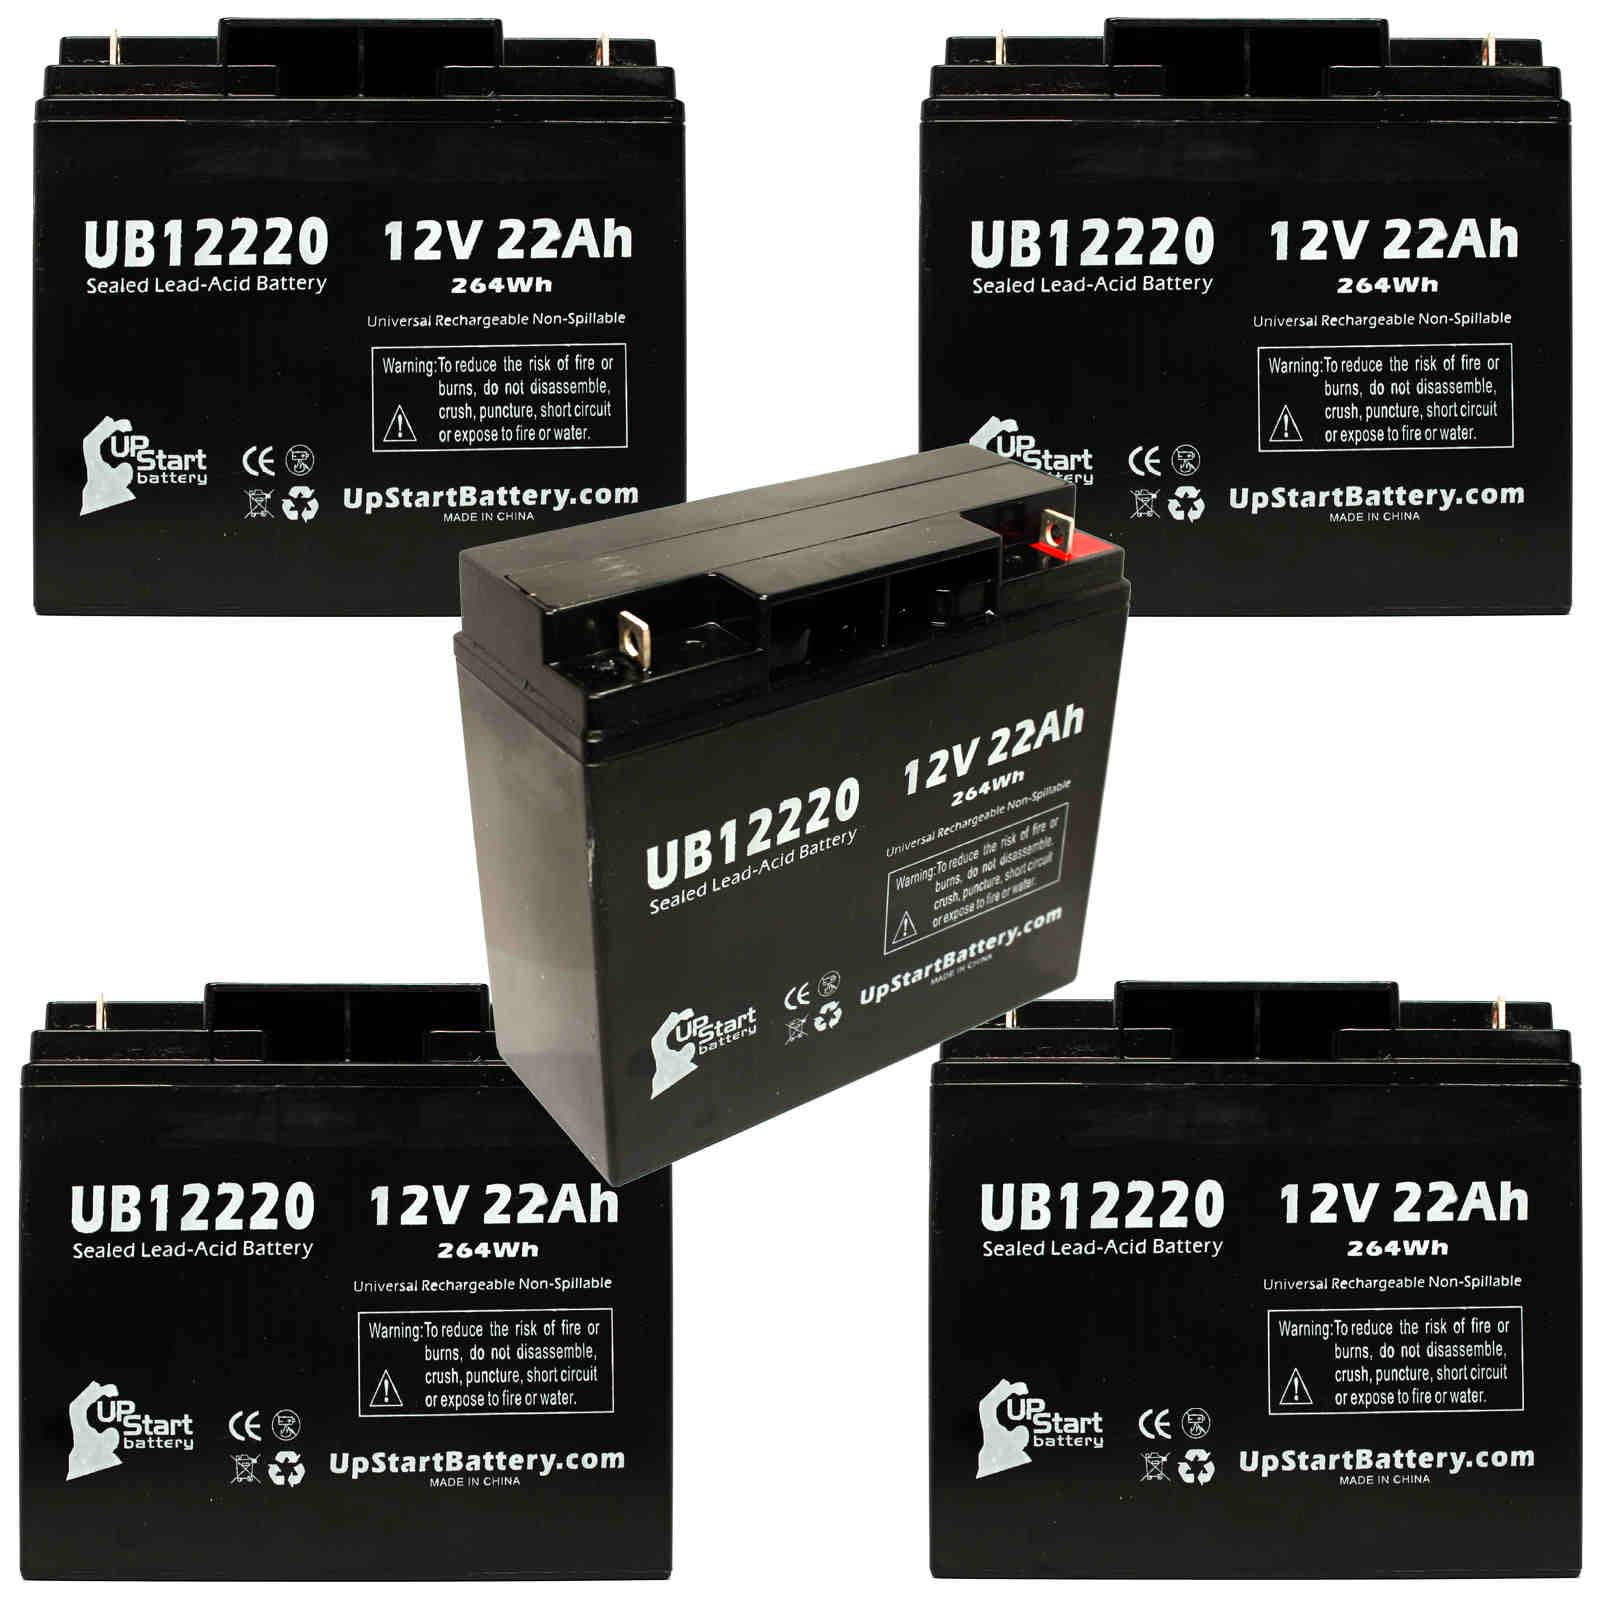 UpStart Battery 5x Pack - Access Battery 2B2G Battery - Replacement UB12220 Universal Sealed Lead Acid Battery (12V, 22Ah, T4 Terminal,) at Sears.com